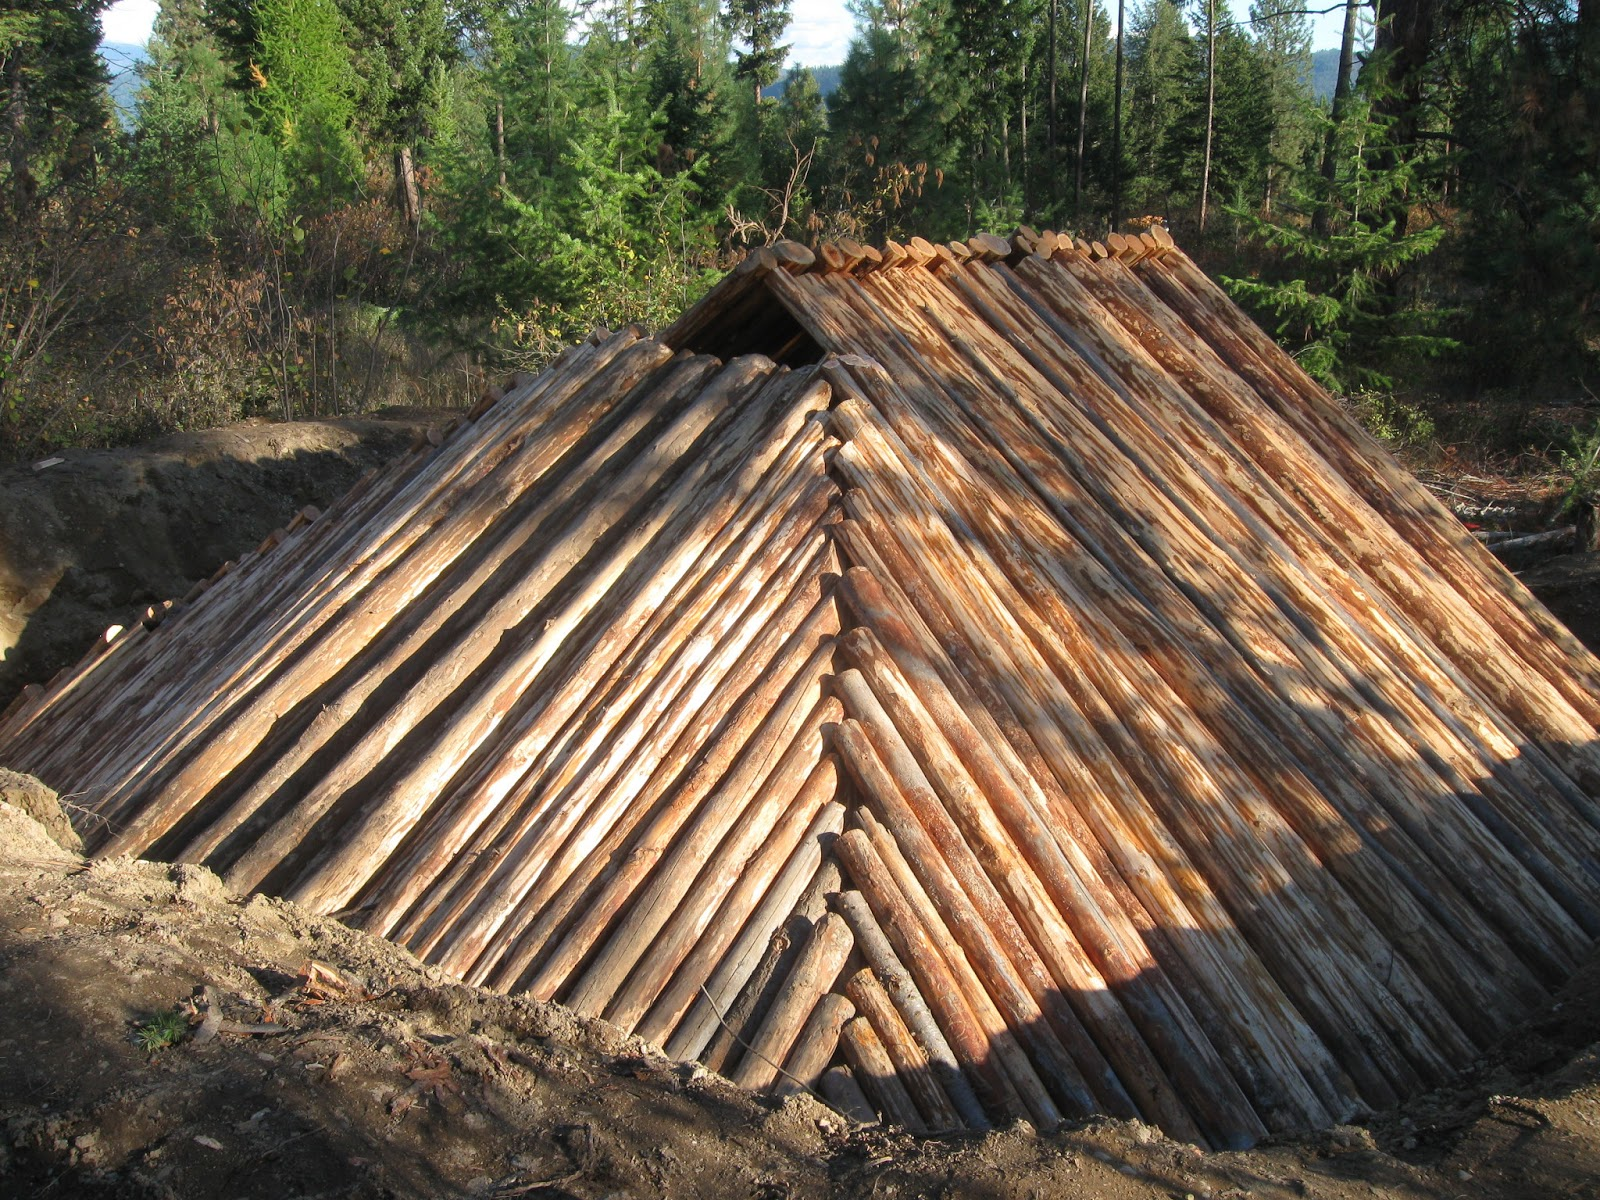 Earth Survival Shelters